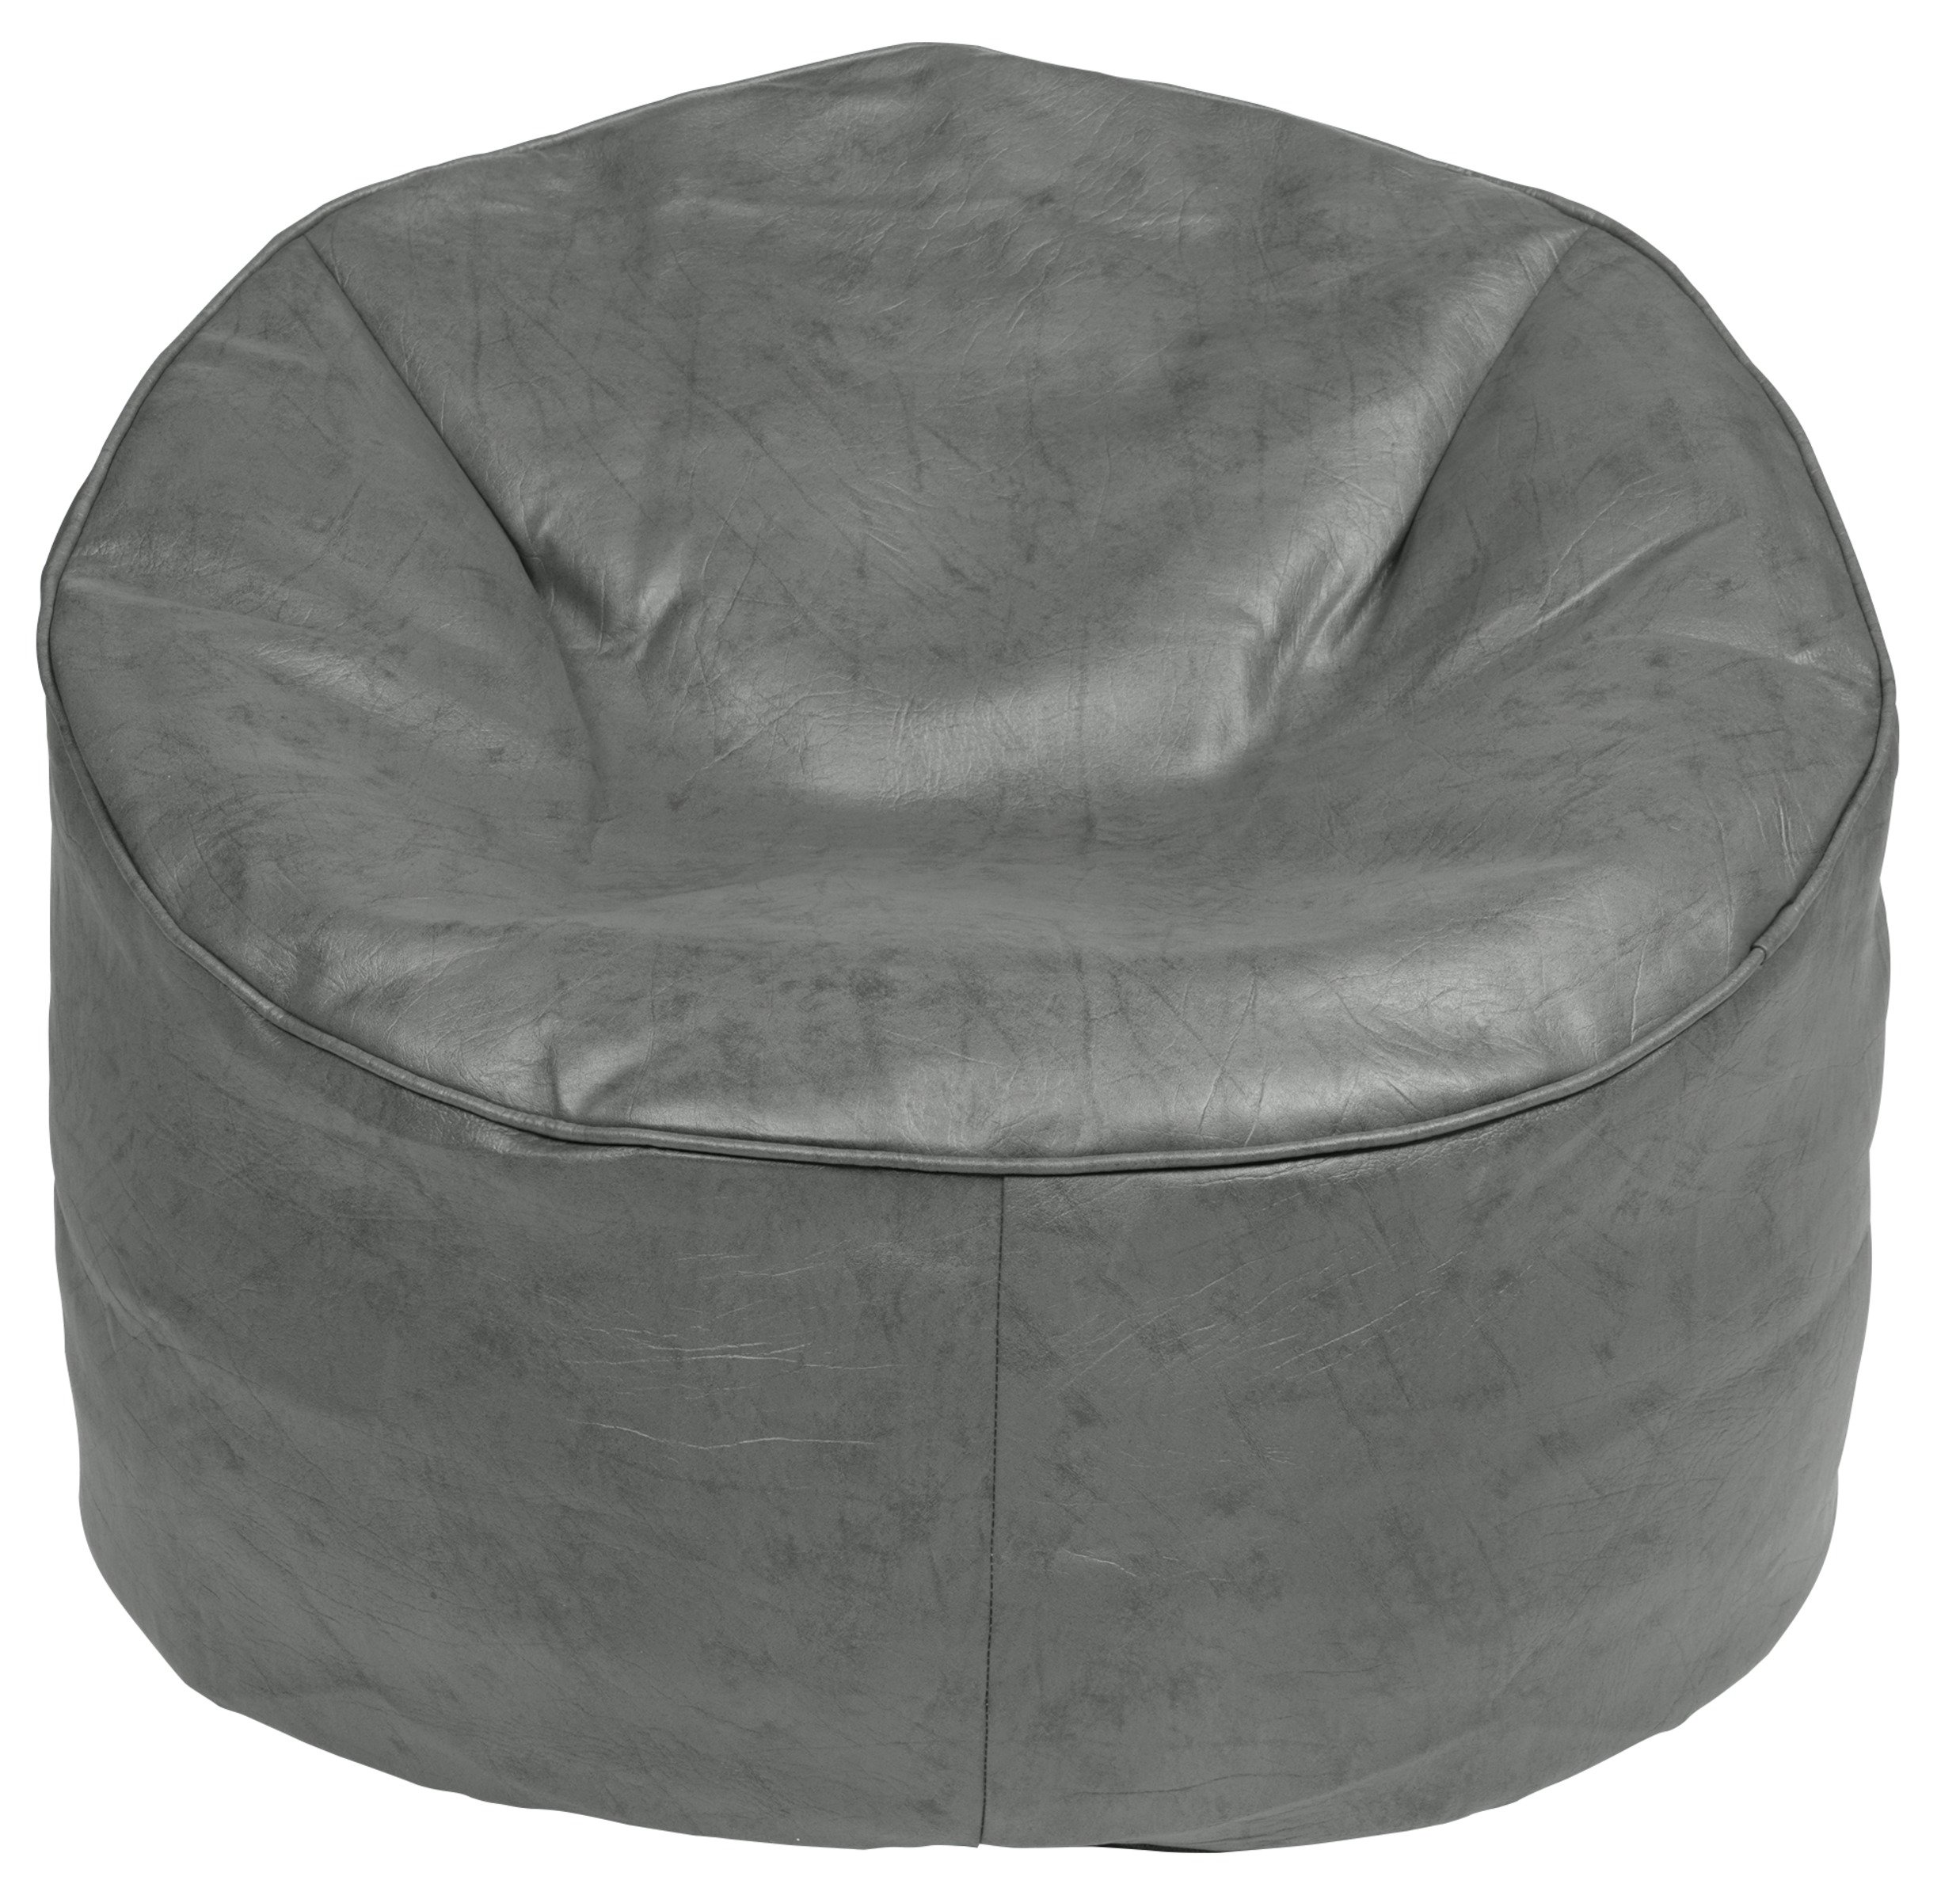 Argos Home Faux Leather Bean Bag Chair - Grey